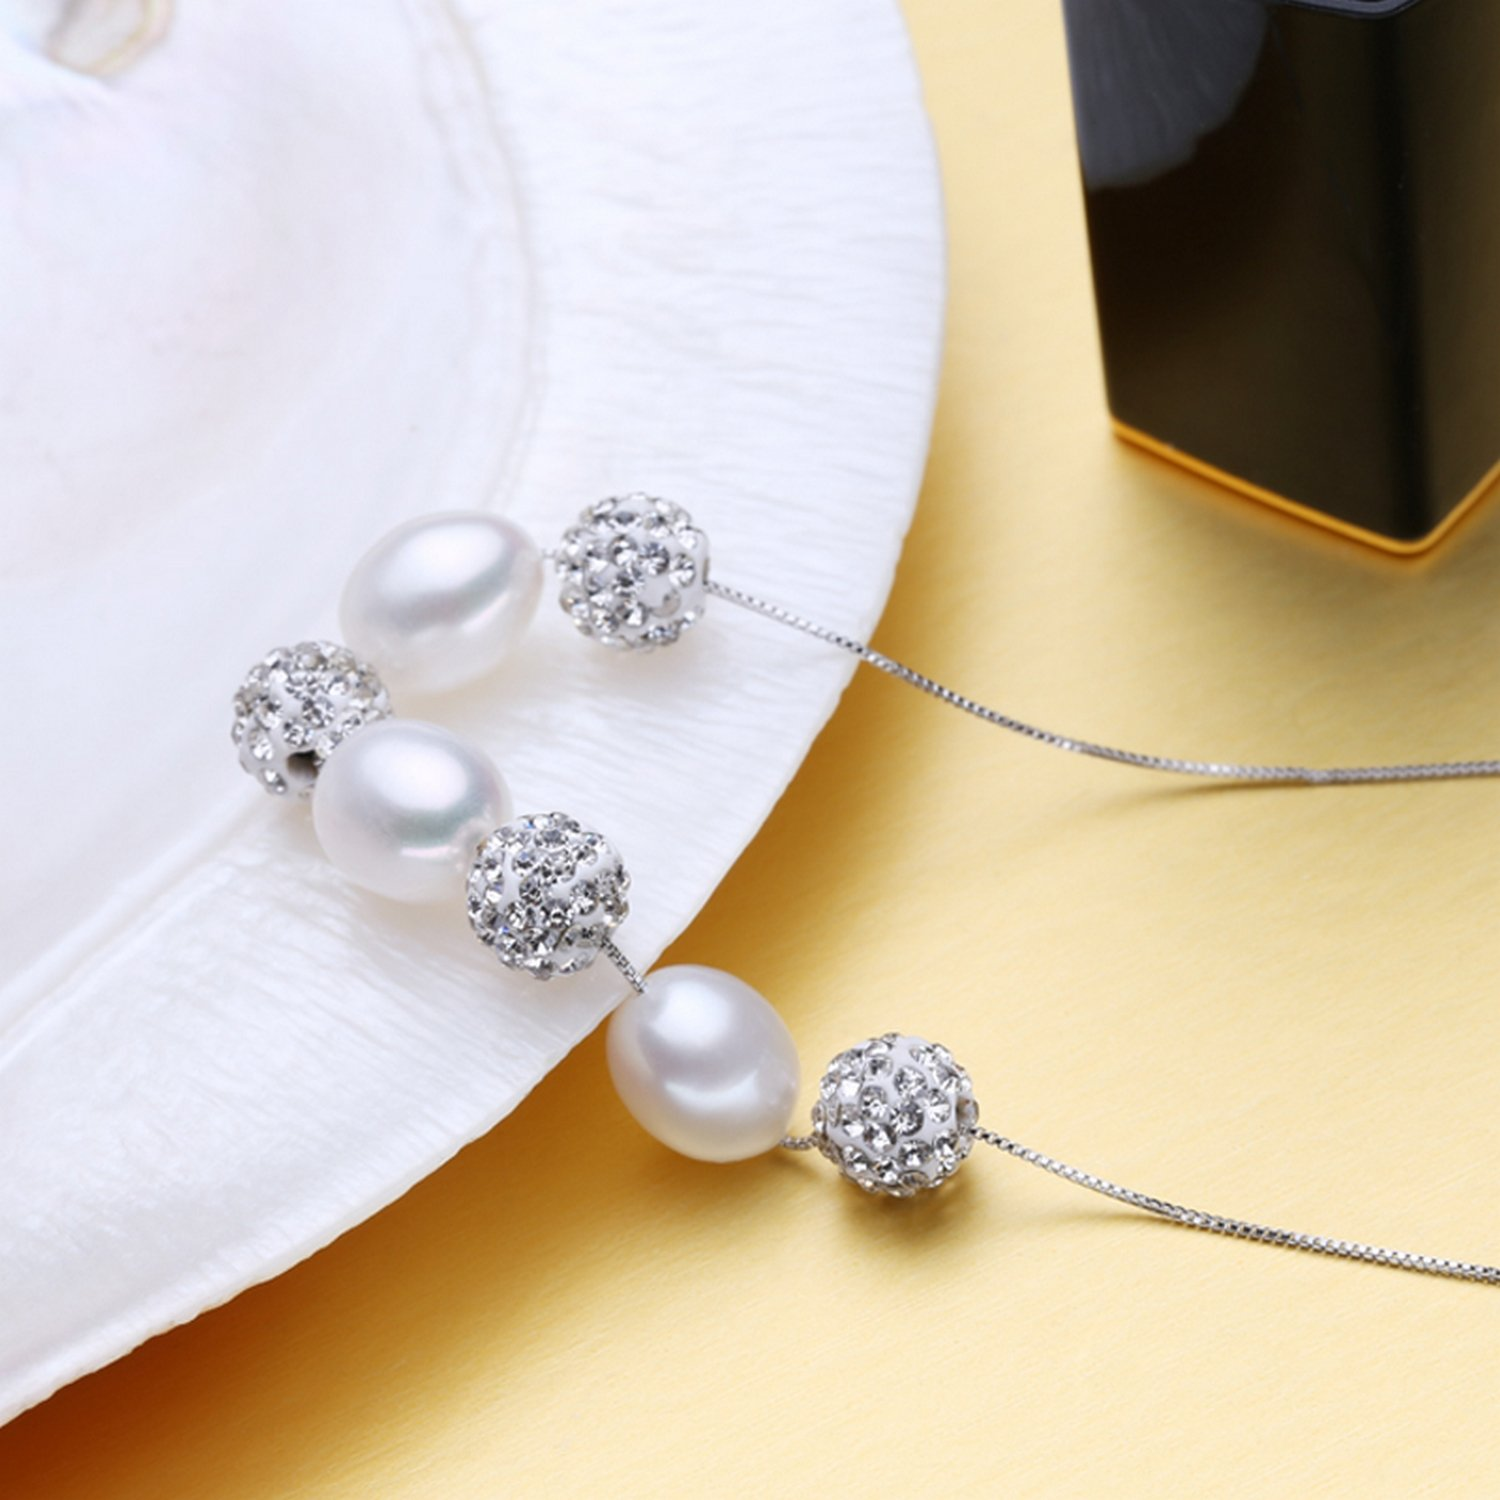 CS-DB Jewelry Silver Pearl Chain Charm Pendants Necklaces